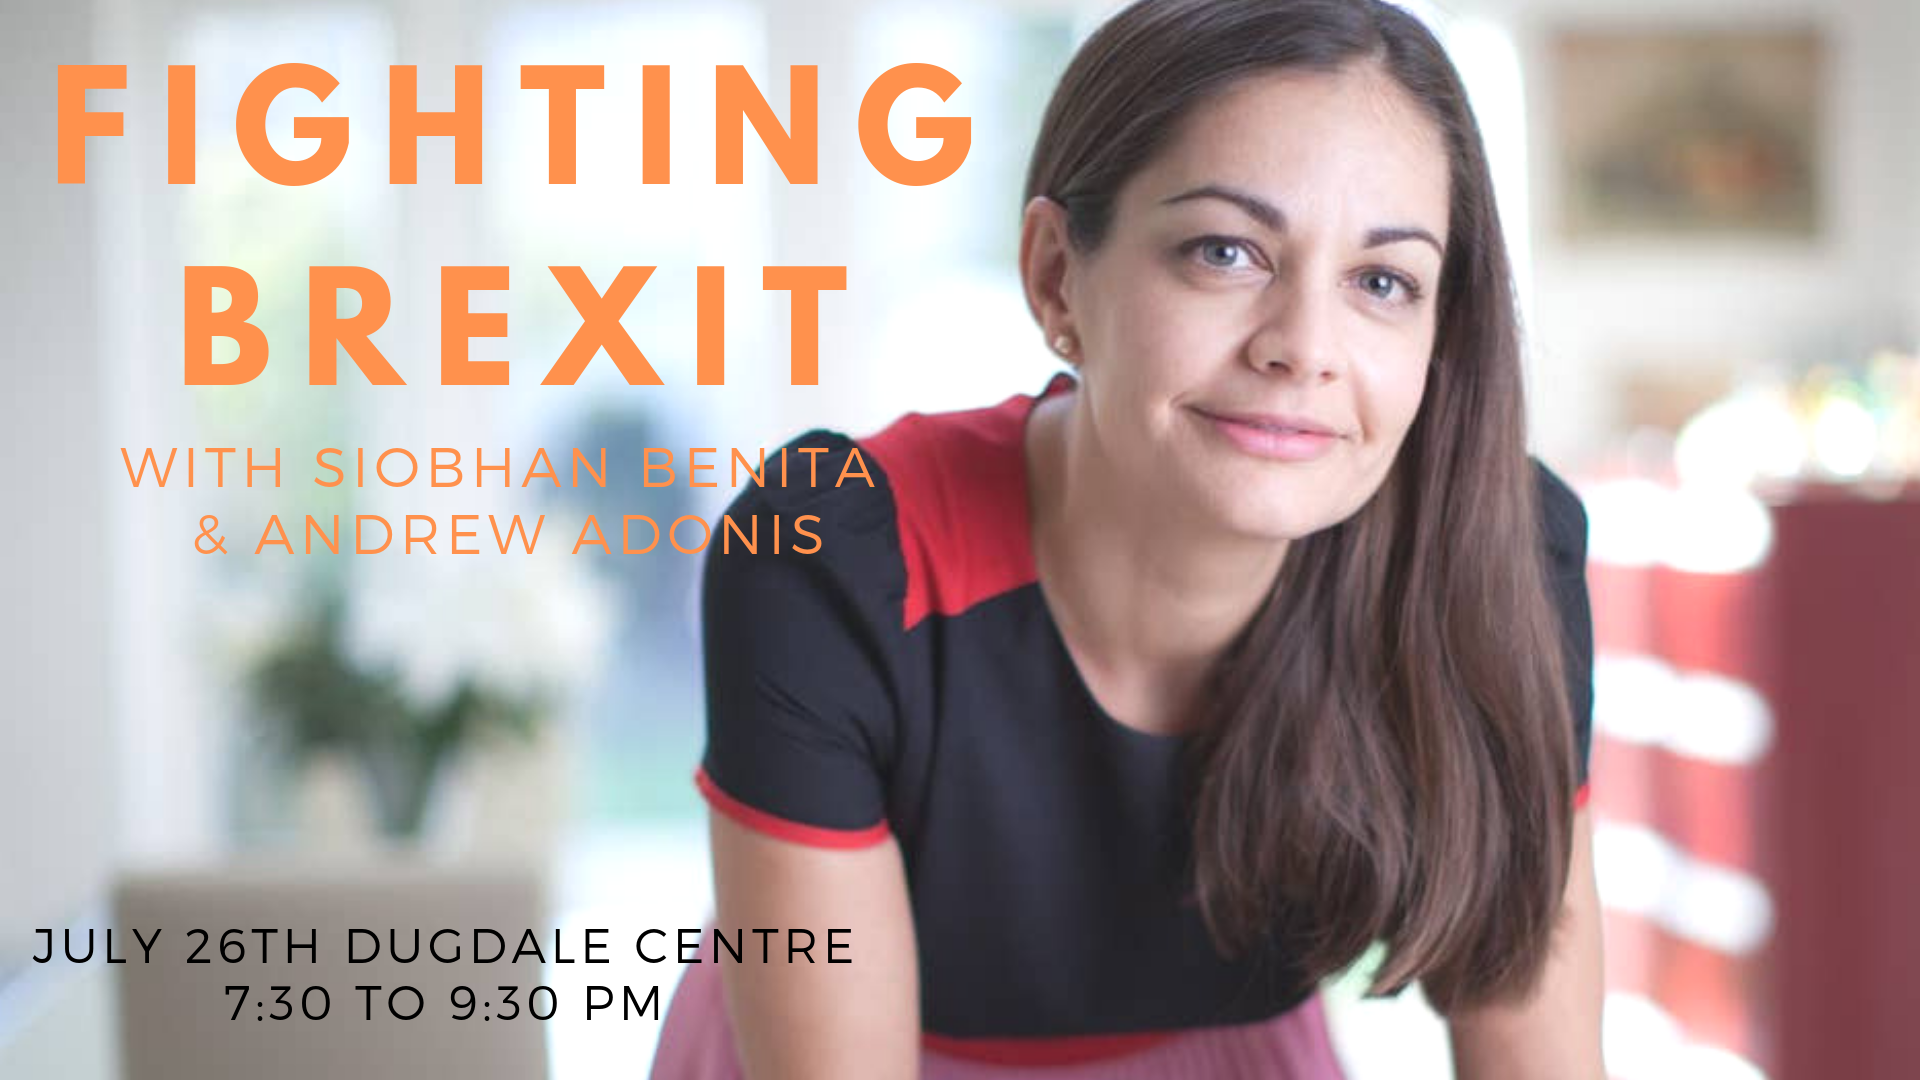 poster or flyer advertising event Meeting: Fighting Brexit - with Andrew Adonis and Siobhan Benita